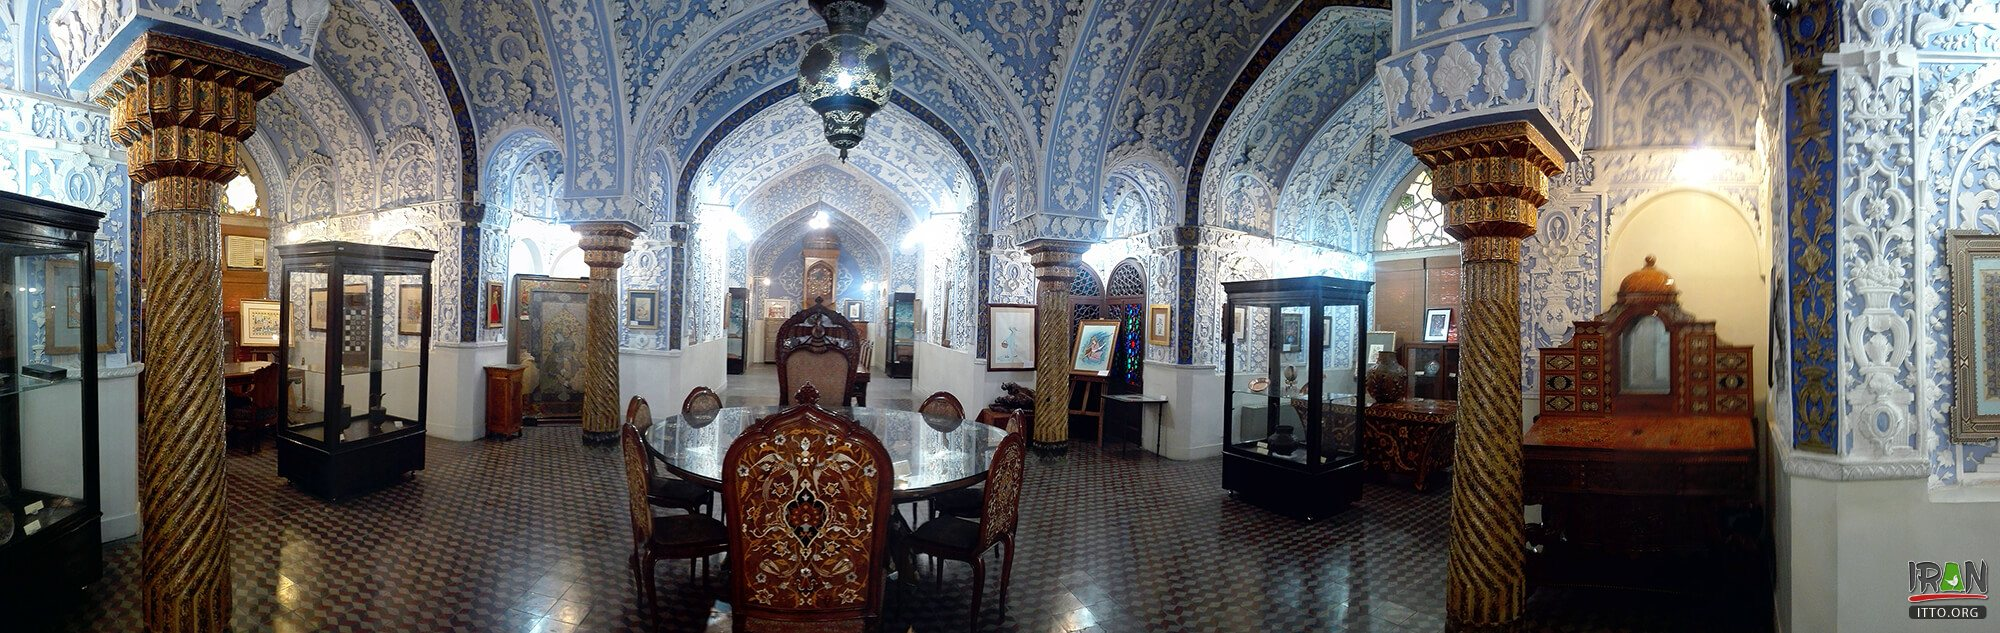 National Arts Museum of Iran,Tehran National Arts Museum,muzeye honar,tehran art museum,national art museum,موزه تهران,iran museums,iran museum,tehran museums,tehran museum,panorama,پانوراما